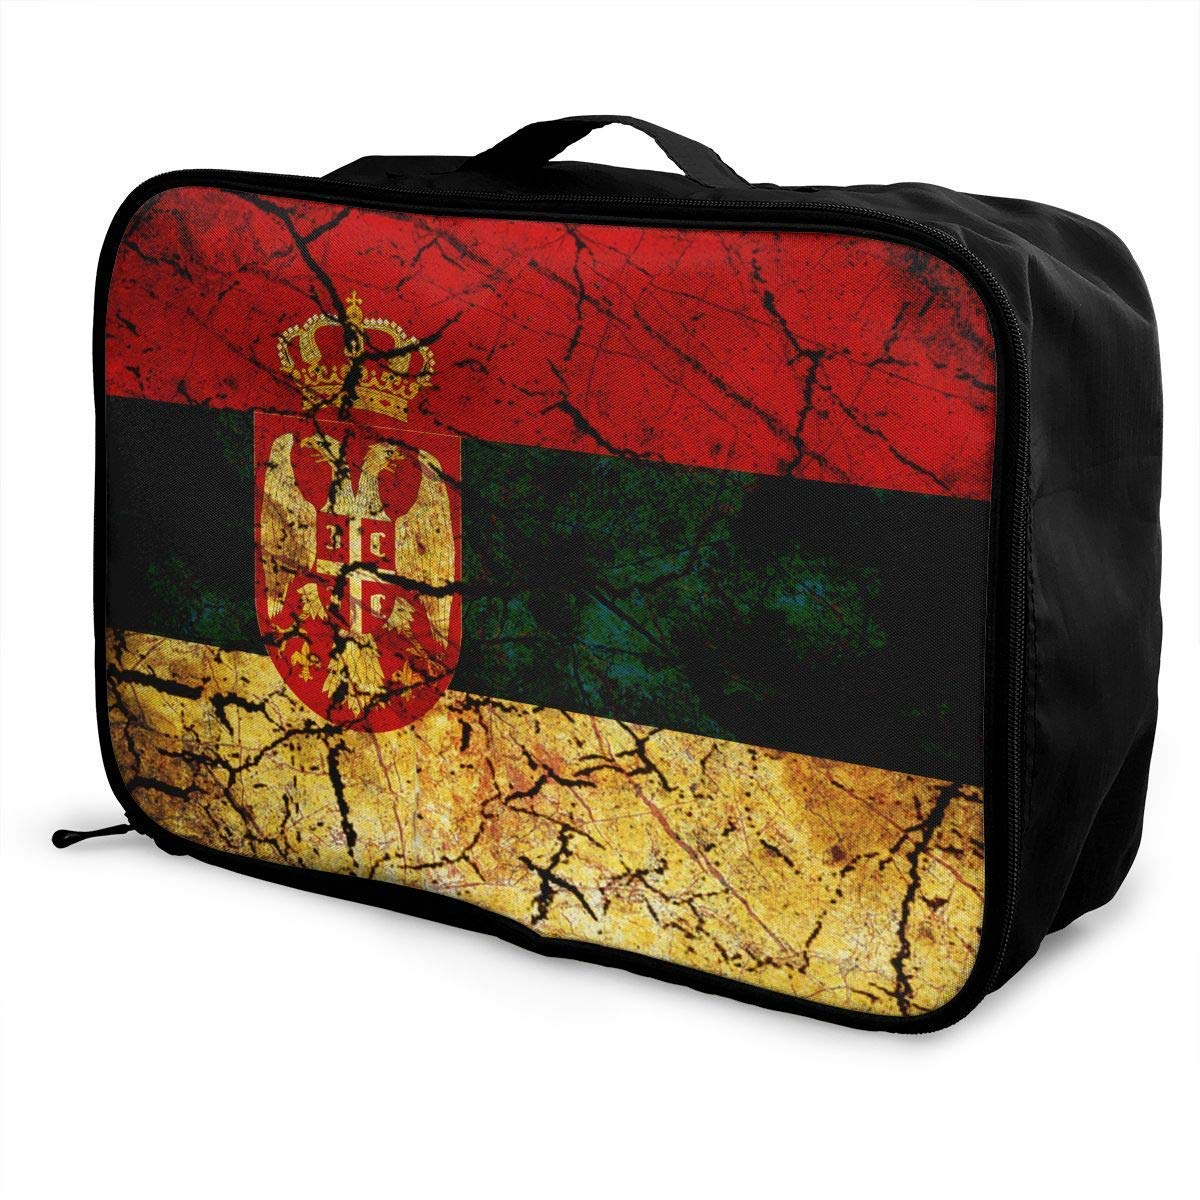 JTRVW Luggage Bags for Travel Portable Luggage Duffel Bag Serbia Flag Travel Bags Carry-on in Trolley Handle